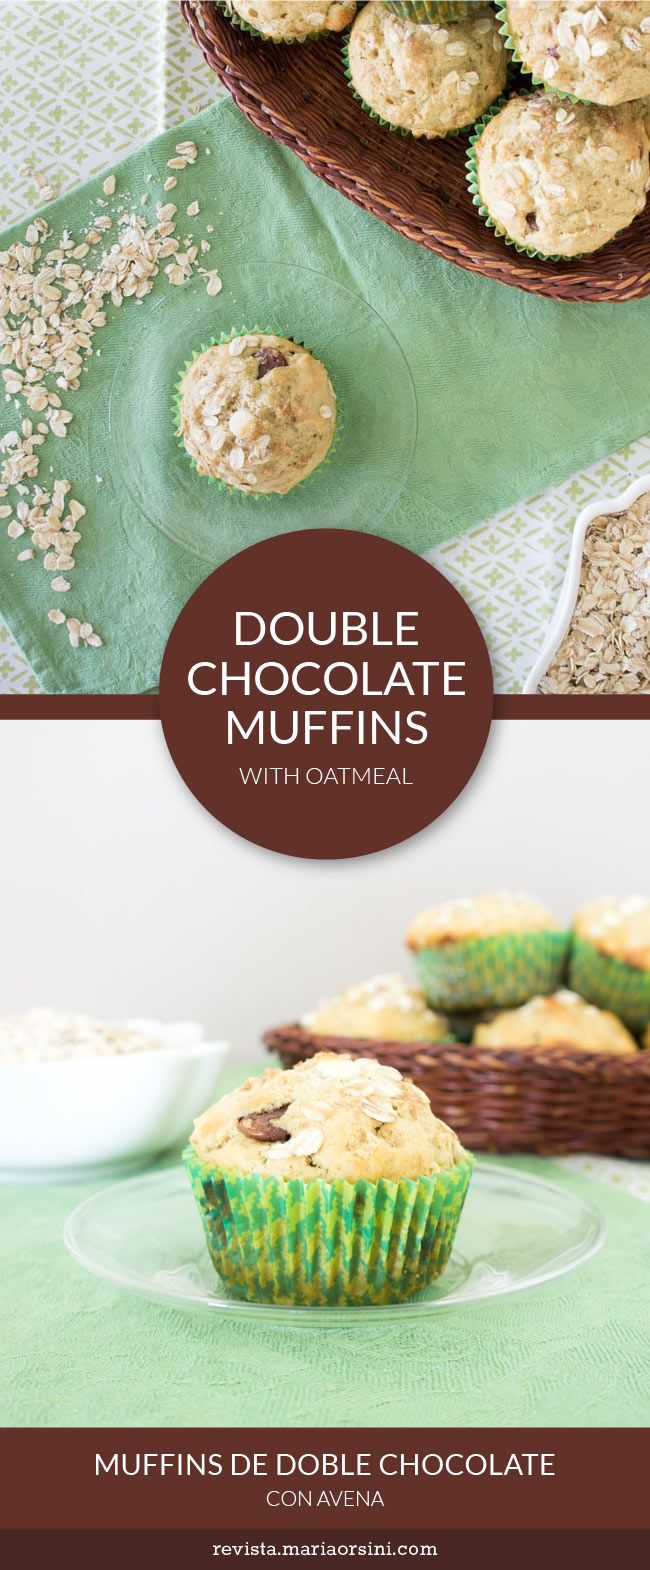 Double chocolate and oatmeal muffins, a quick and easy recipe with white chocolate and milk chocolate. Sneaky dessert for breakfast!